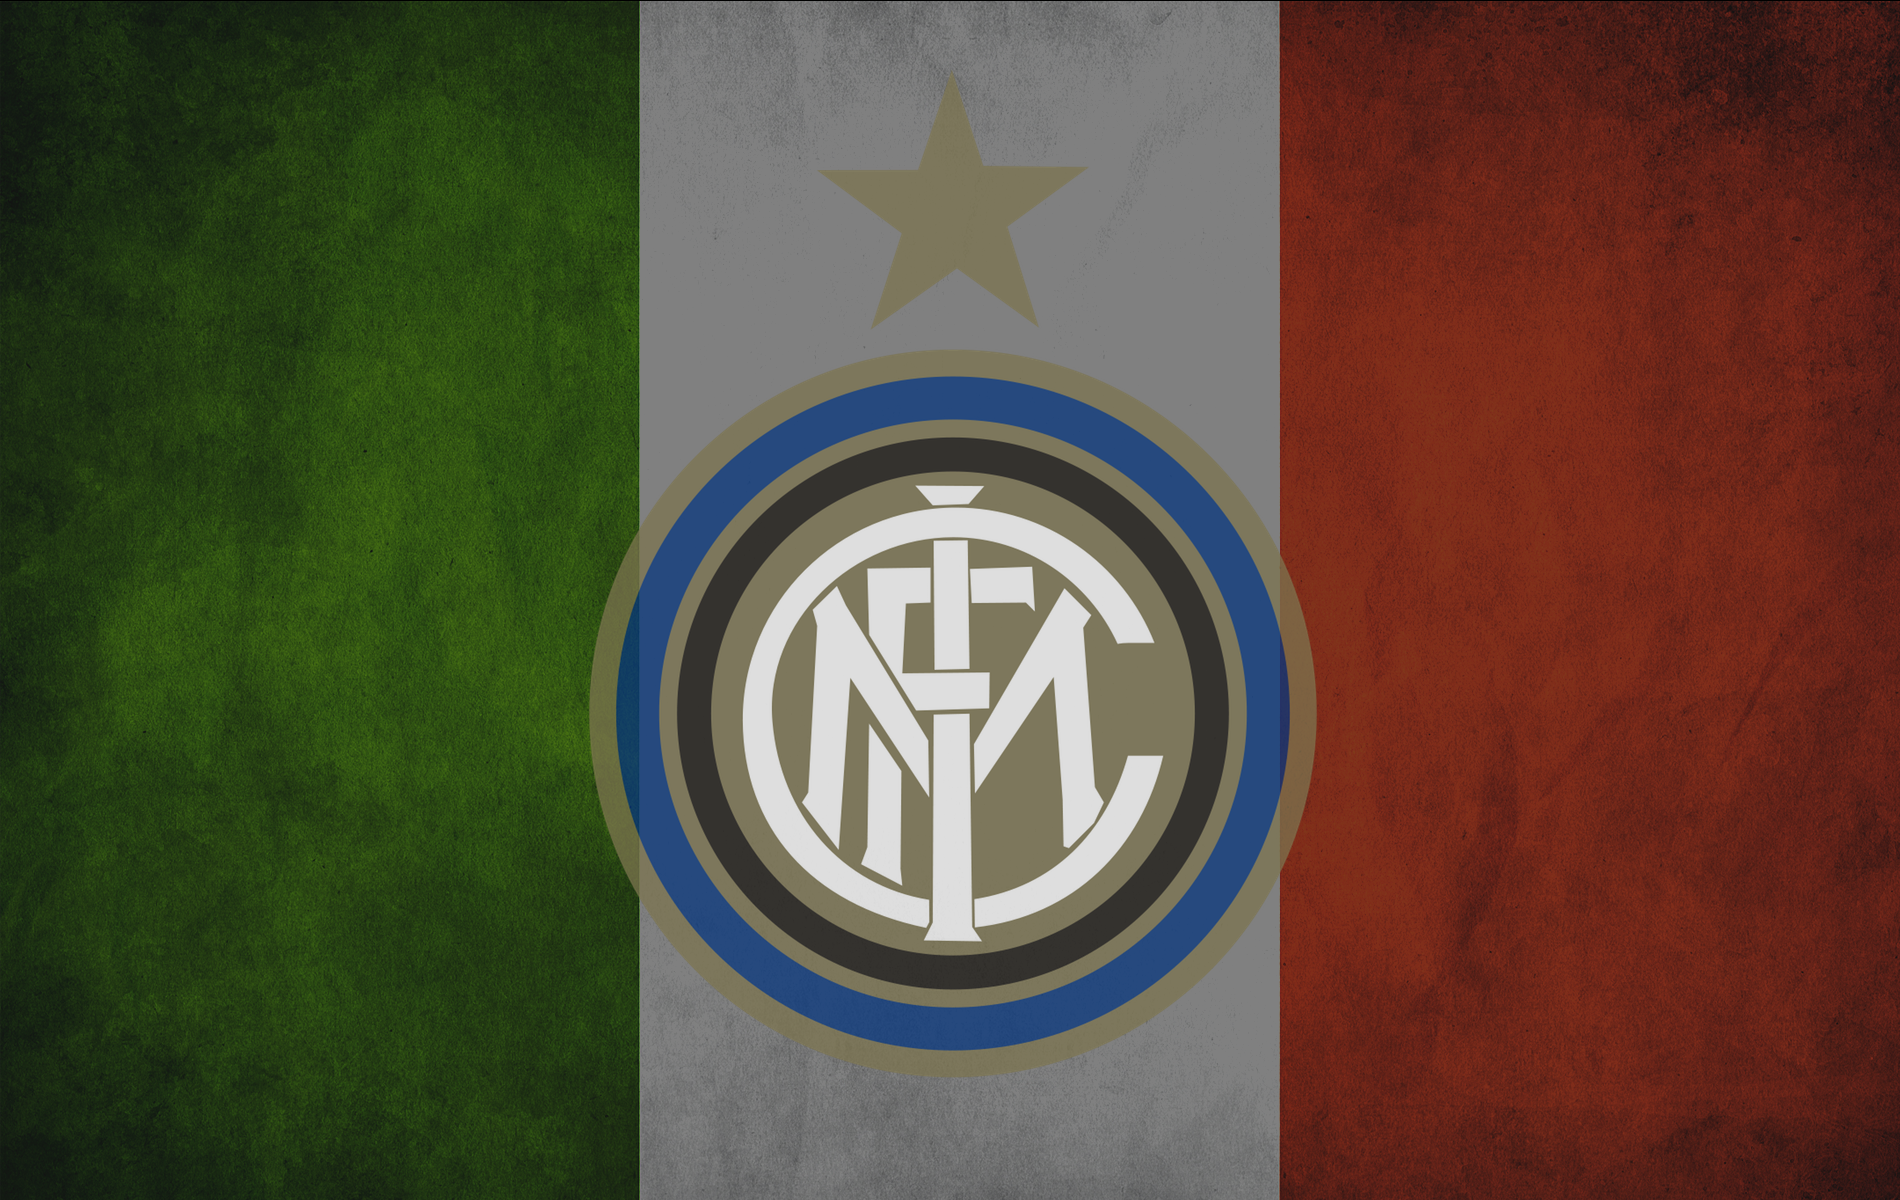 Inter Milan Logo On Italian Flag By Himfin93 On Deviantart